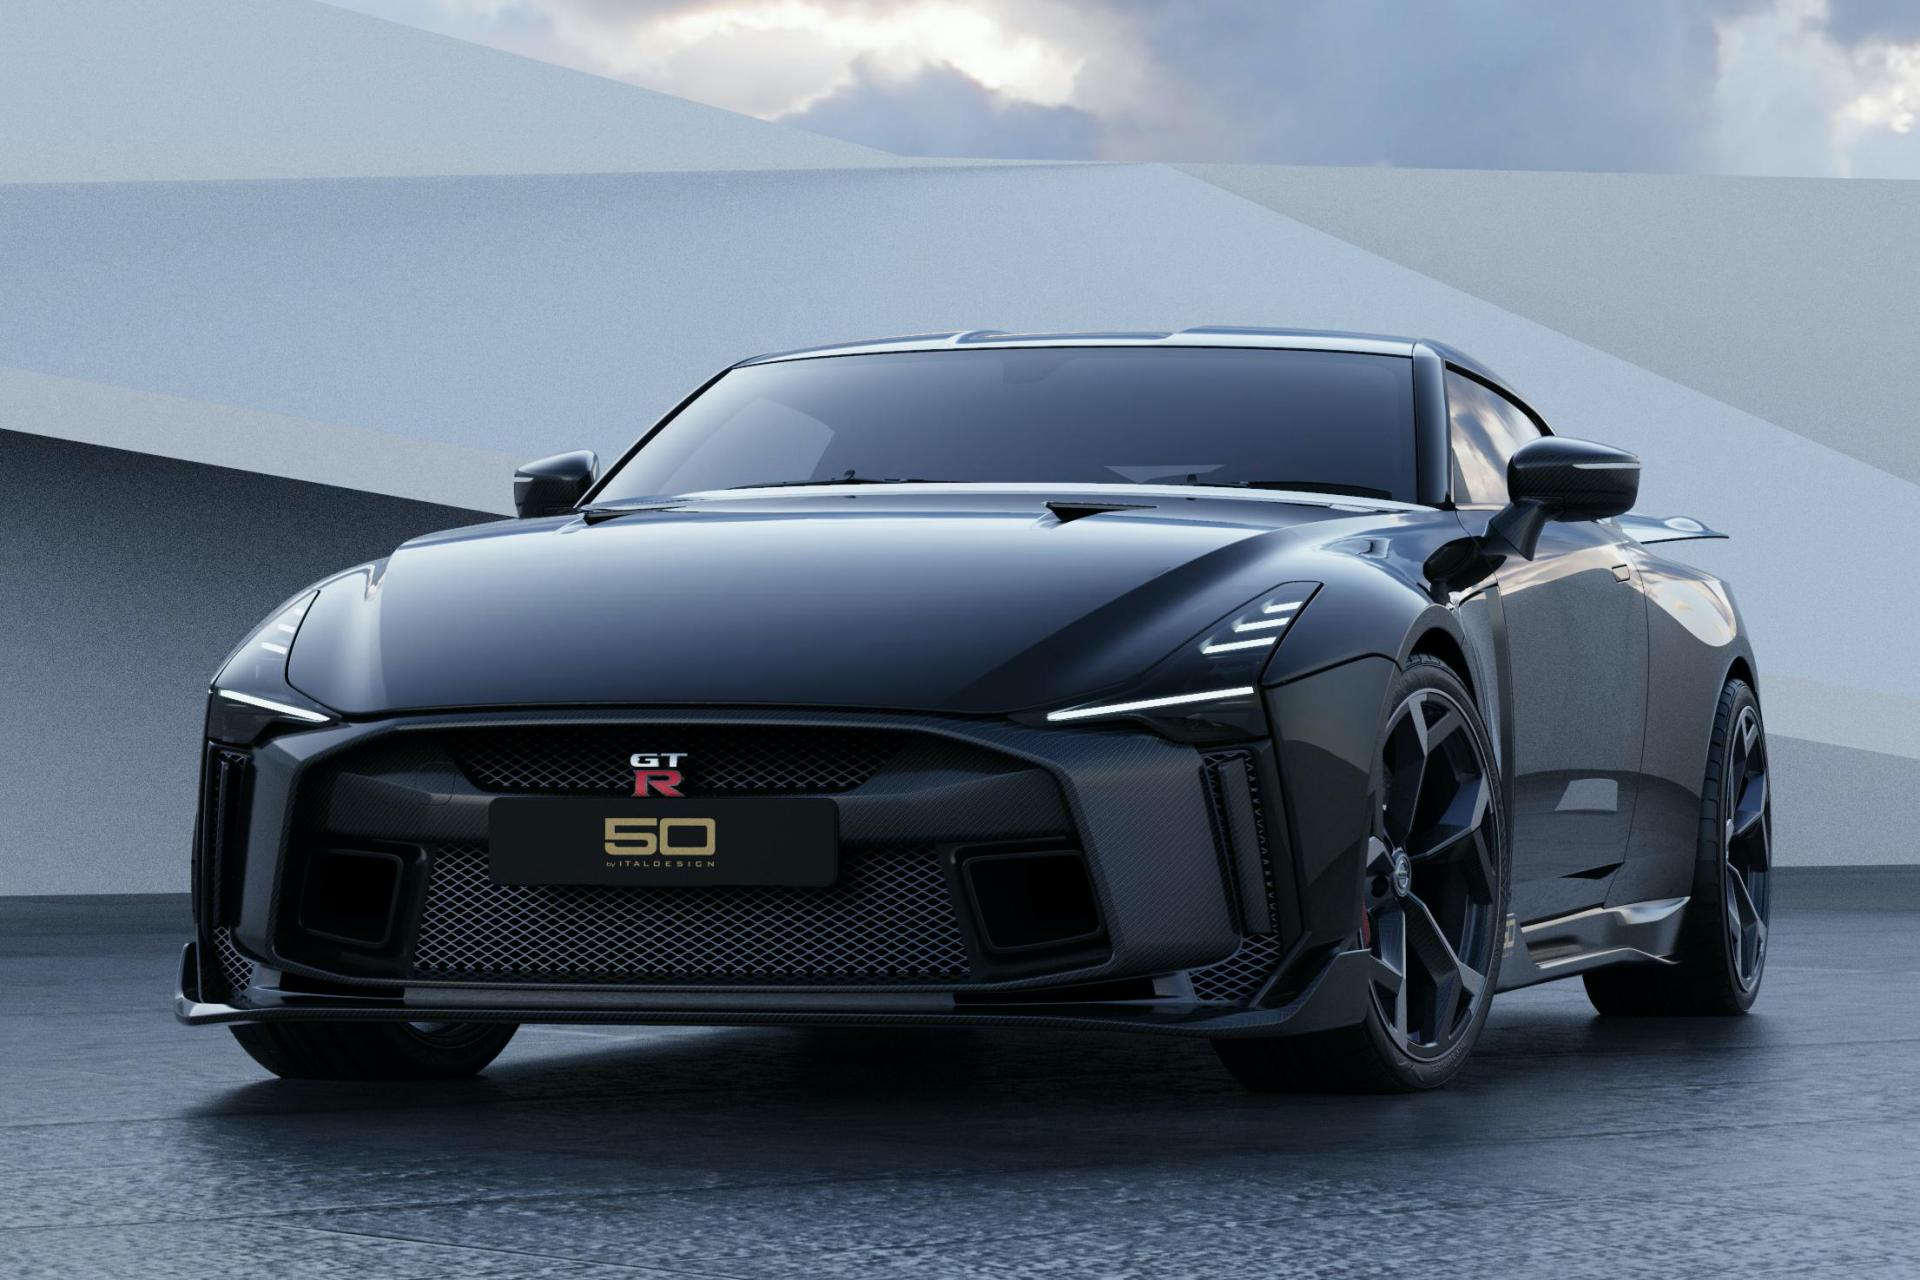 Nissan GT-R50 by Italdesign to reach customers by 2020-end